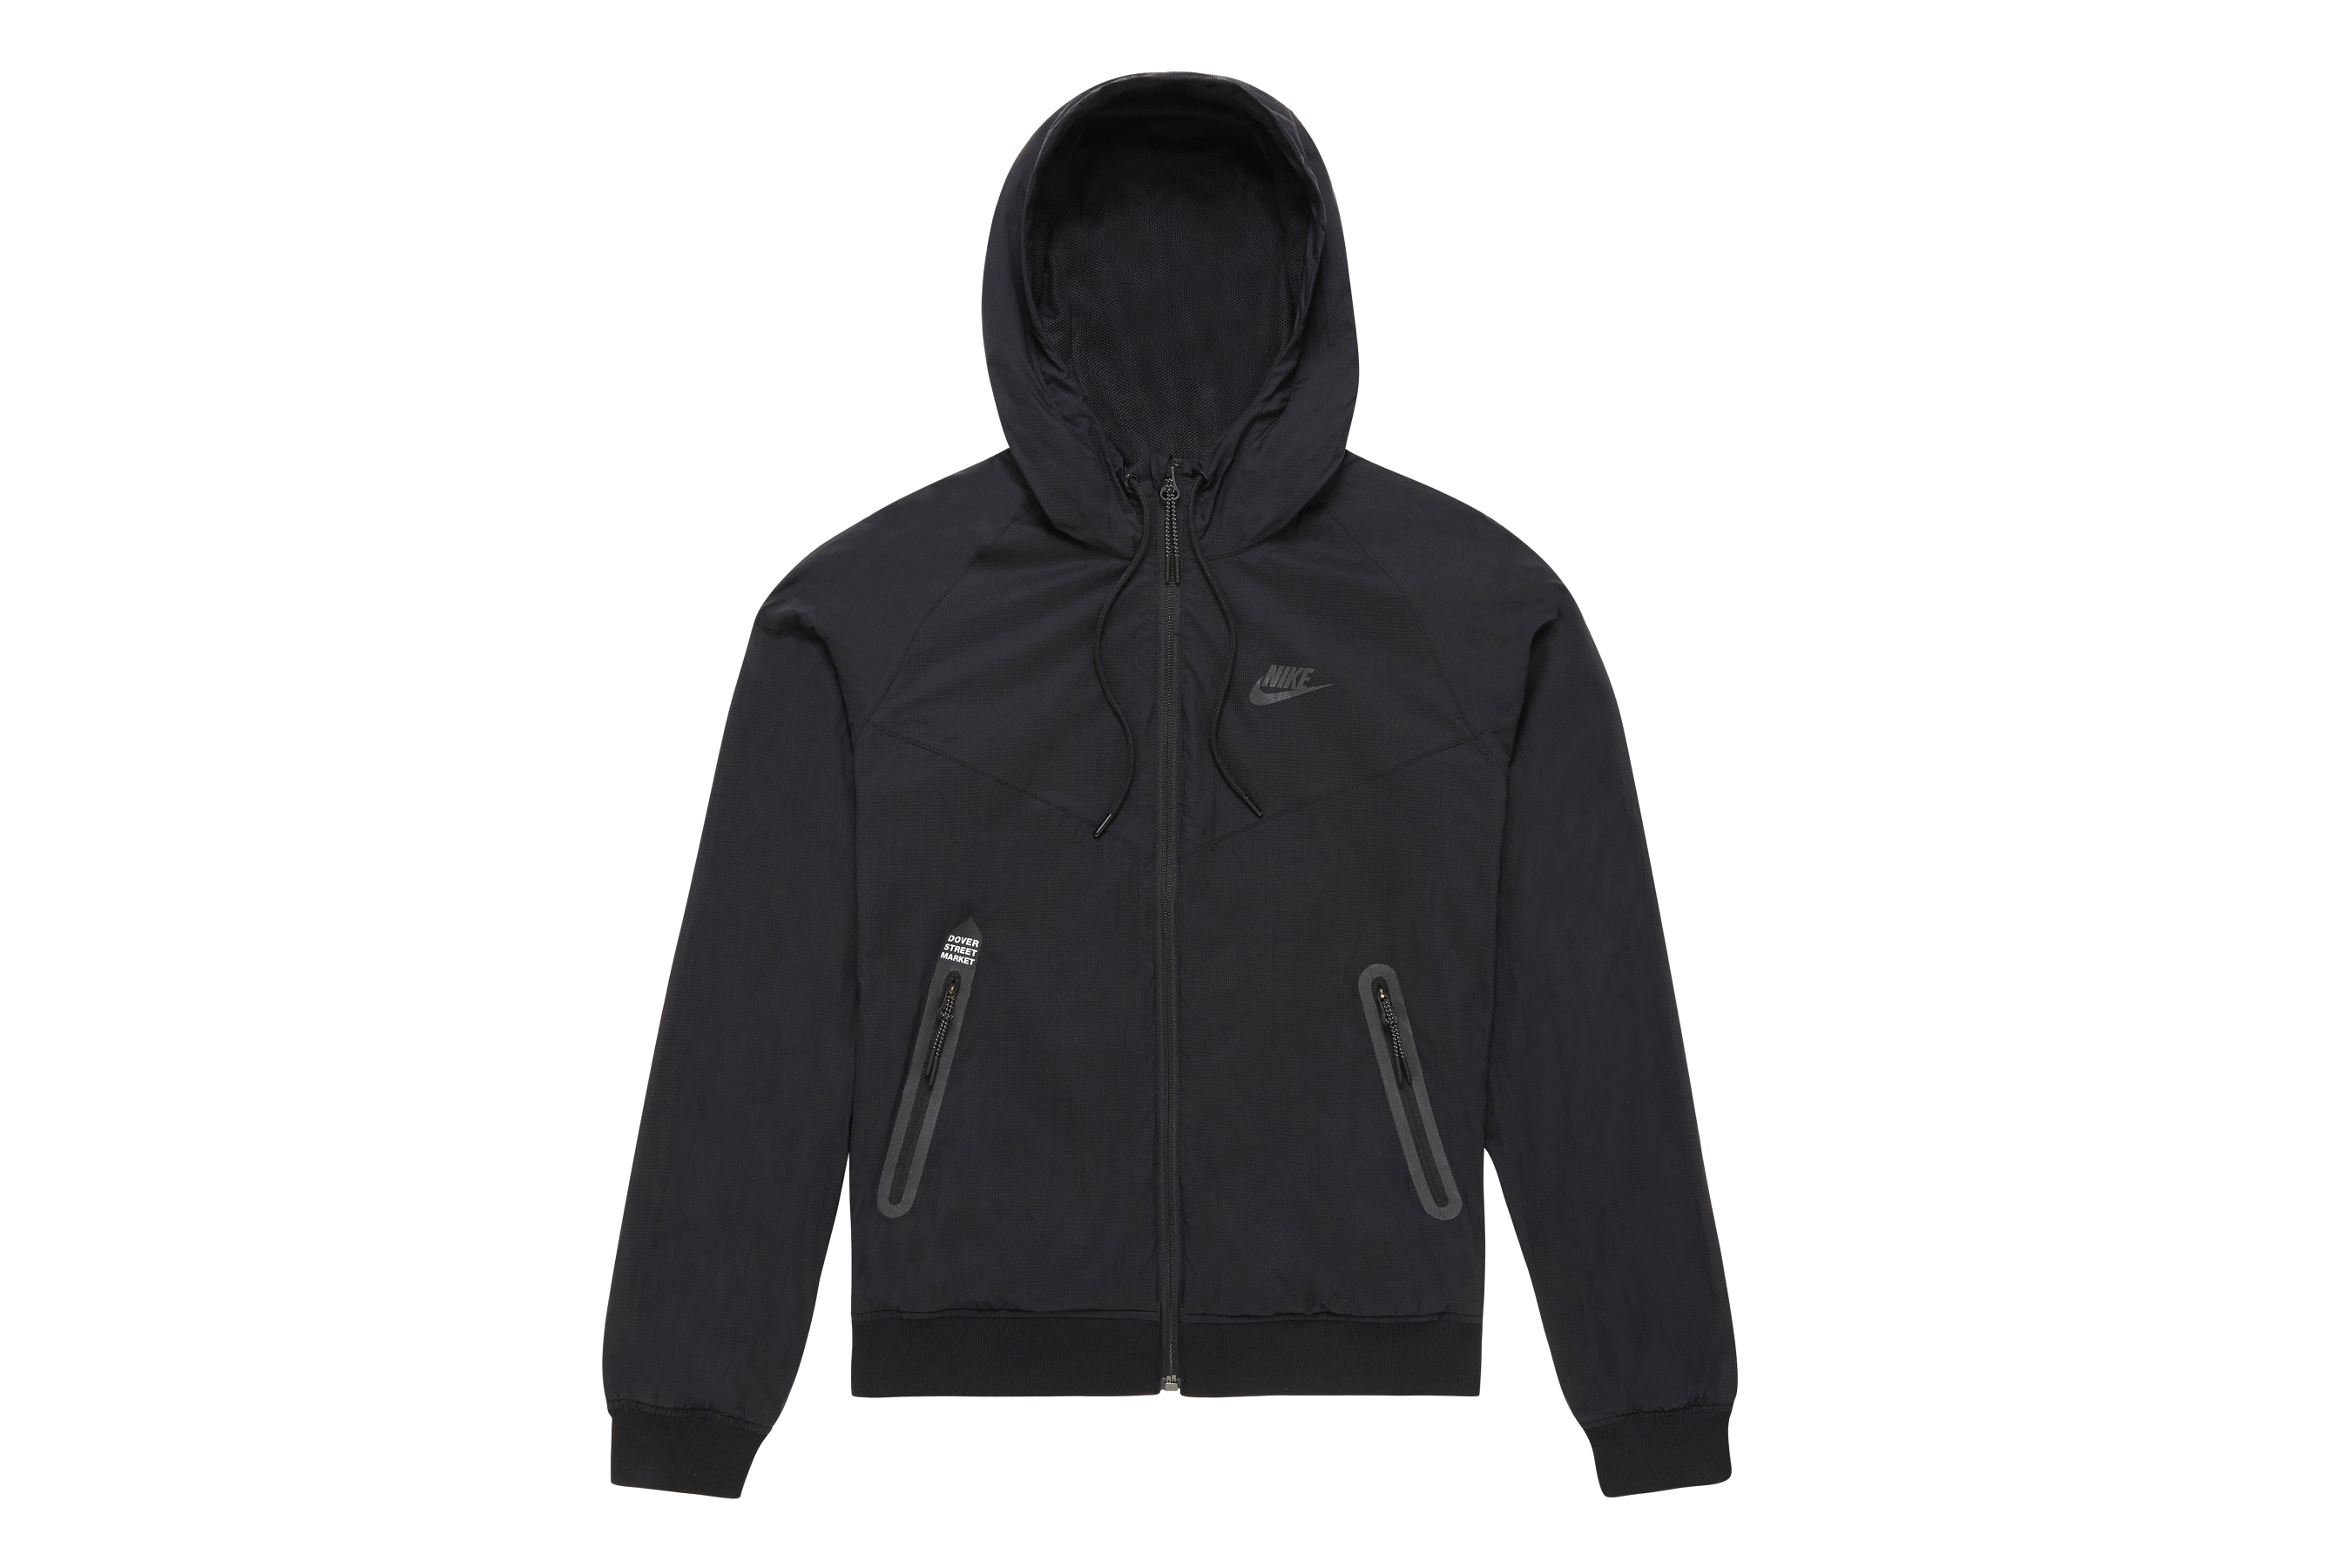 NikeLab Teams up With Dover Street Market for the Iconic Windrunner Jacket